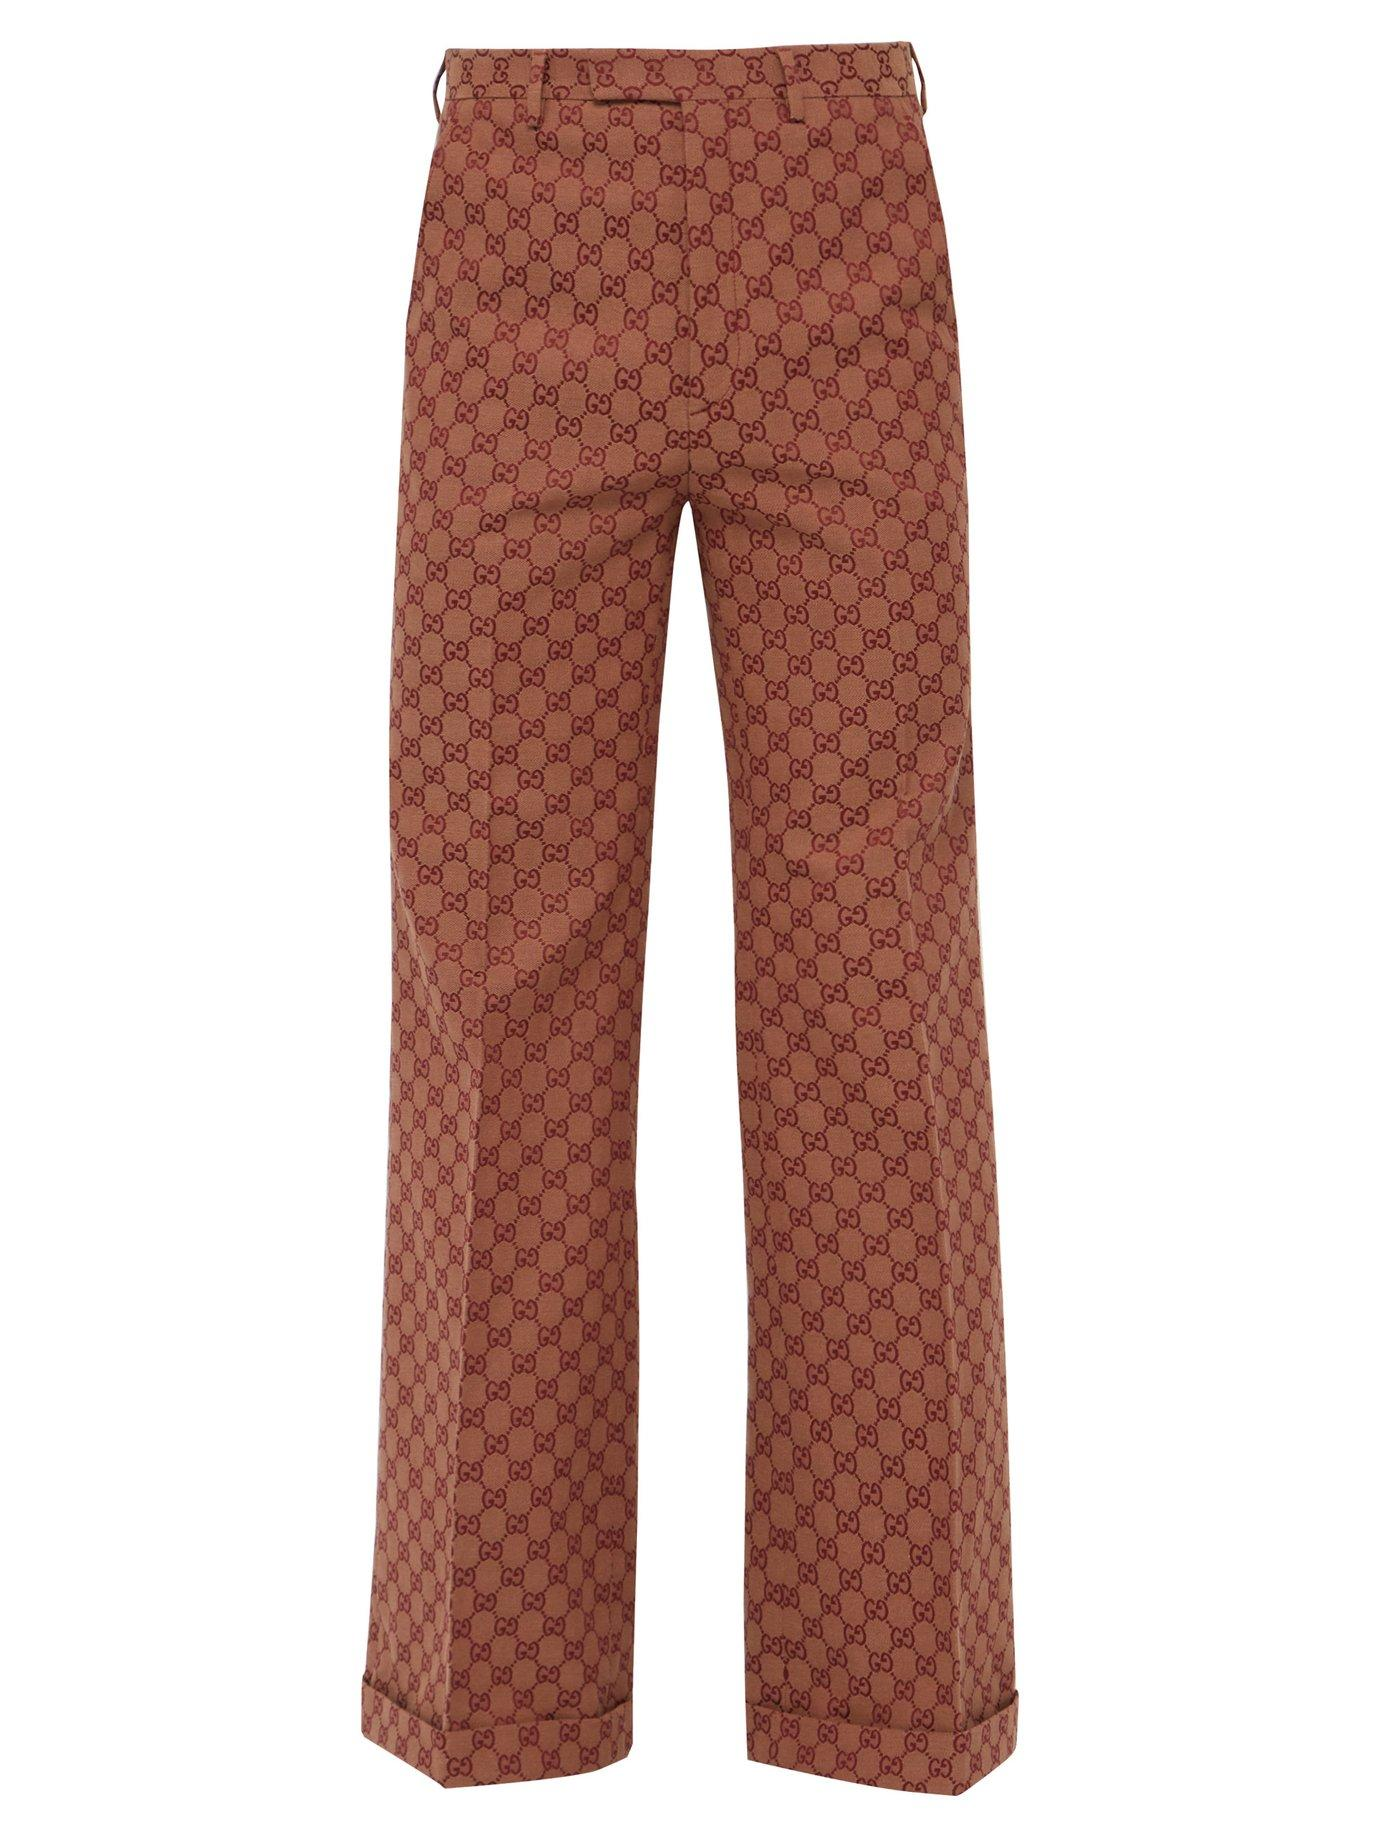 9bc53691b Lyst - Gucci Gg Logo Jacquard Cotton Twill Wide Leg Trousers in Red ...